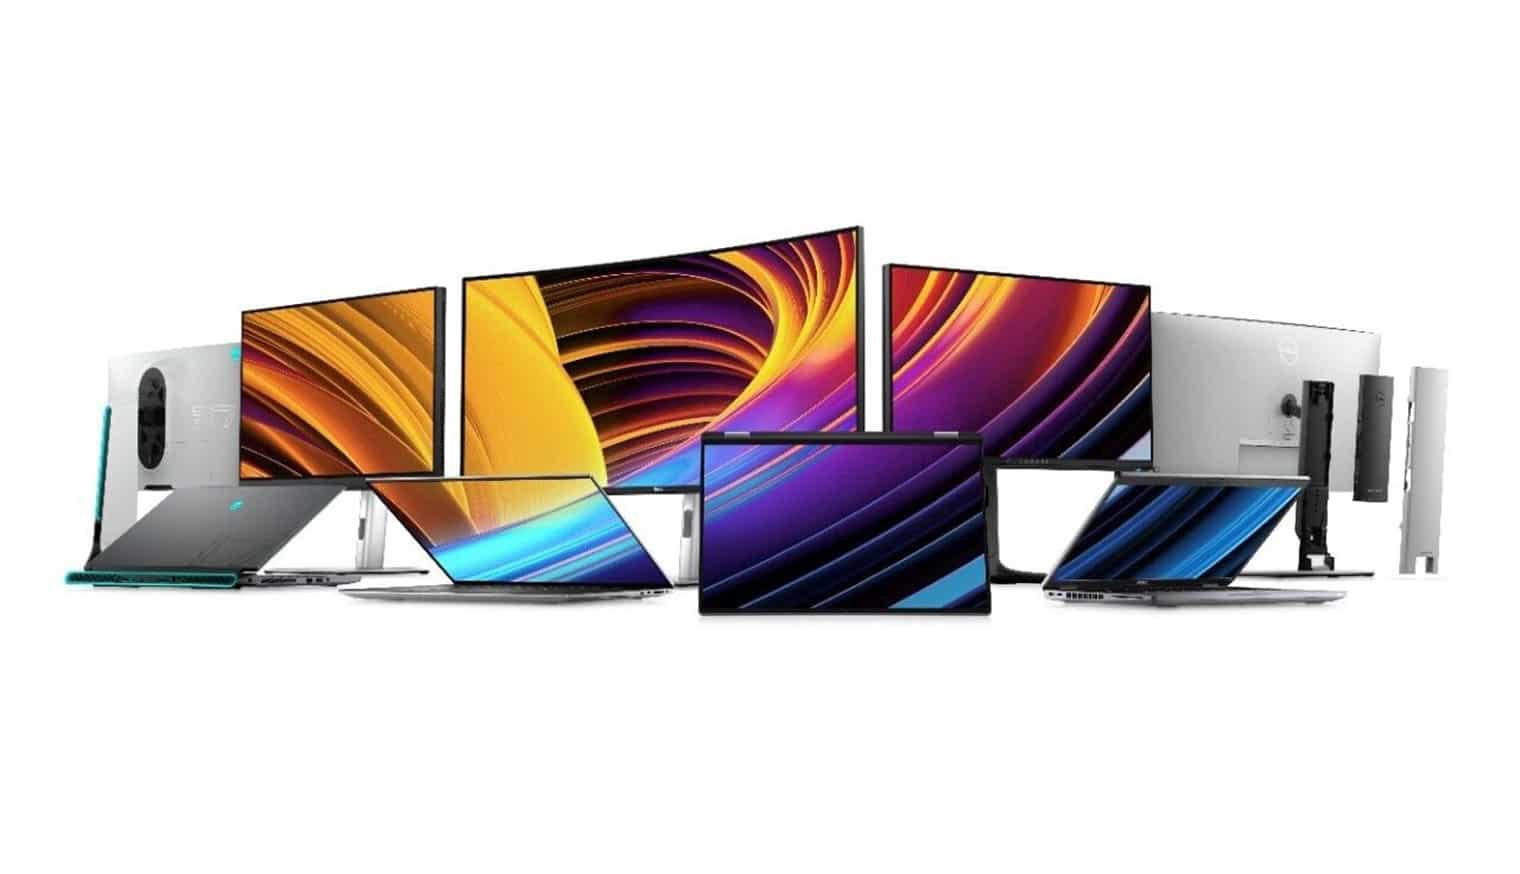 dell technologies introduce new range of laptops